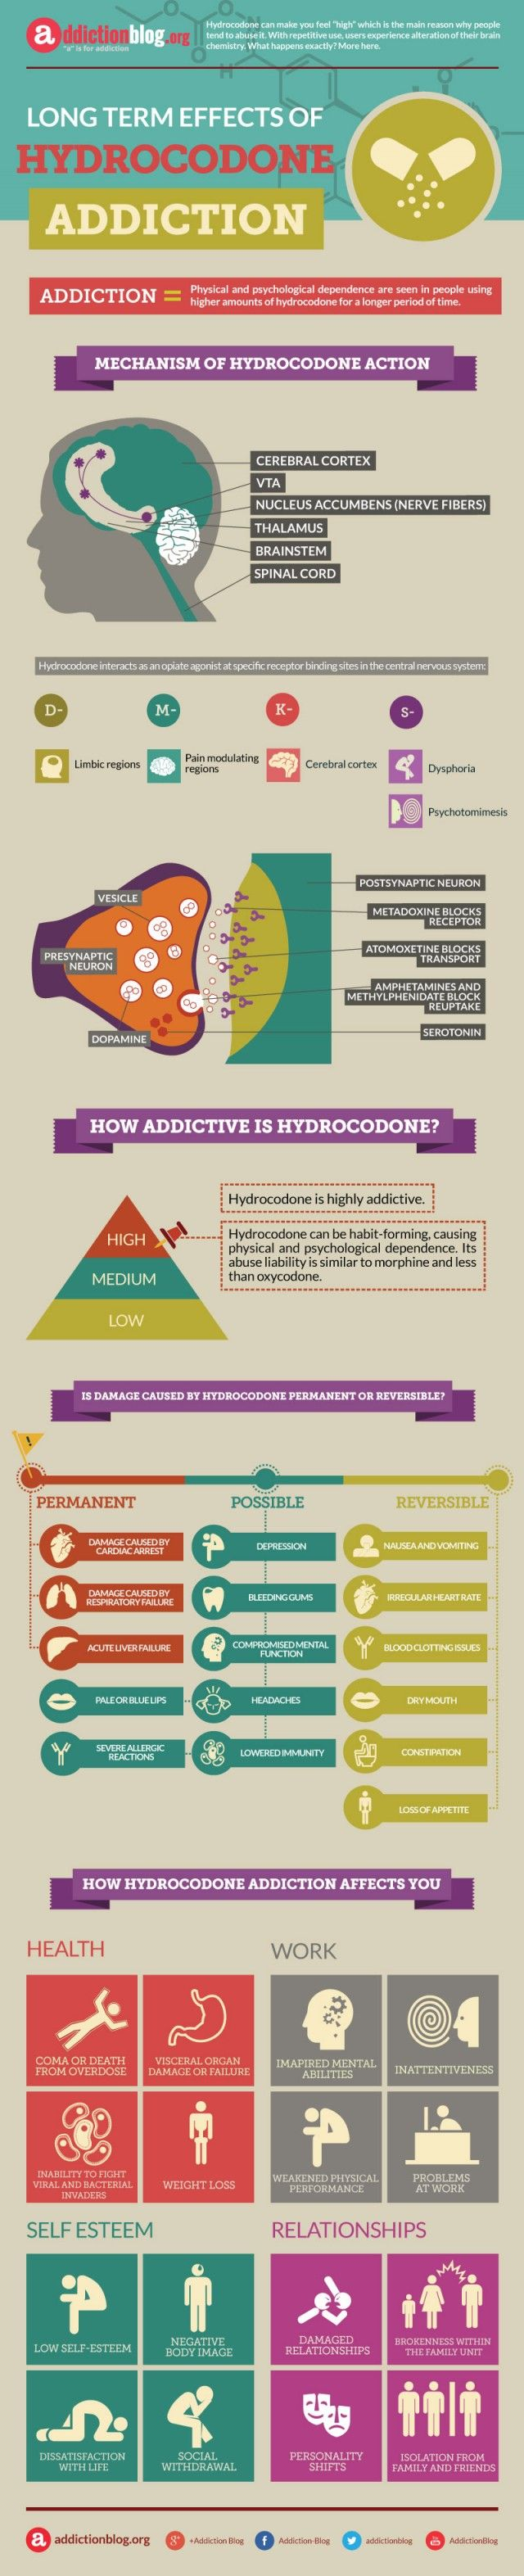 Long term effects of Hydrocodone addiction (INFOGRAPHIC) | Addiction Blog